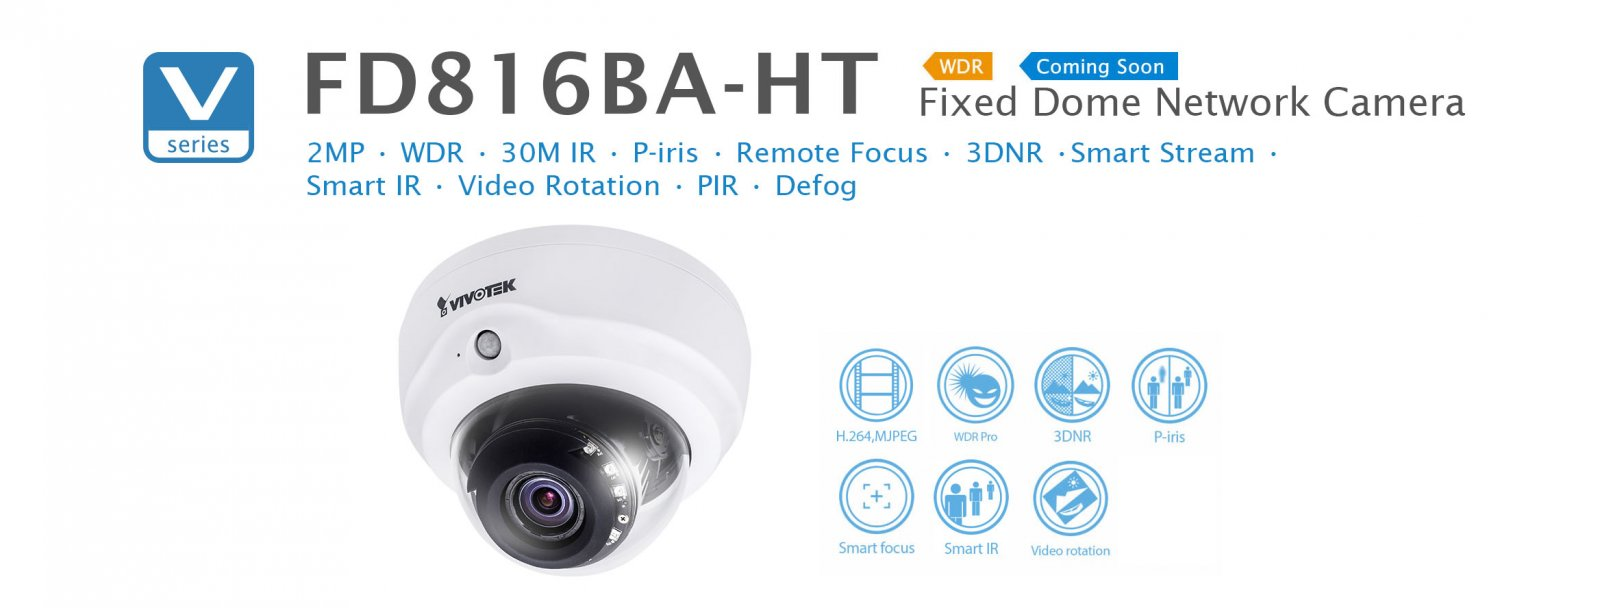 FD816BA-H. Vivotek Fixed Dome Network Camera